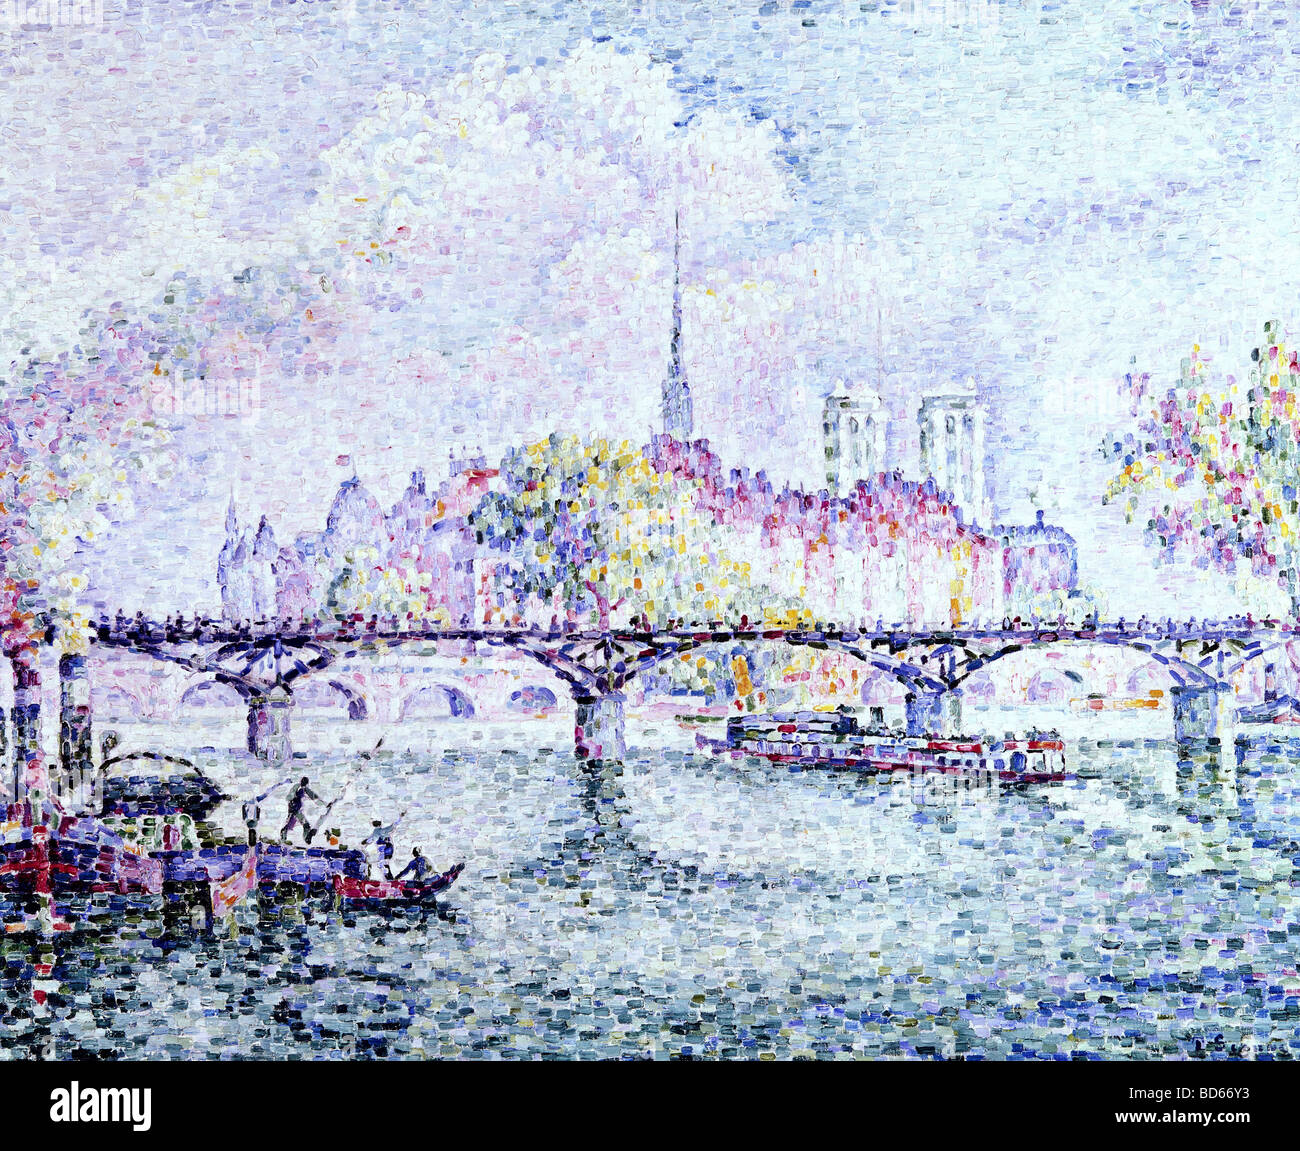 fine arts, Signac, Paul, (1863 - 1935), painting, 'Paris, Ile de la Cite', 1912, oil on canvas, Museum Folkwang, - Stock Image